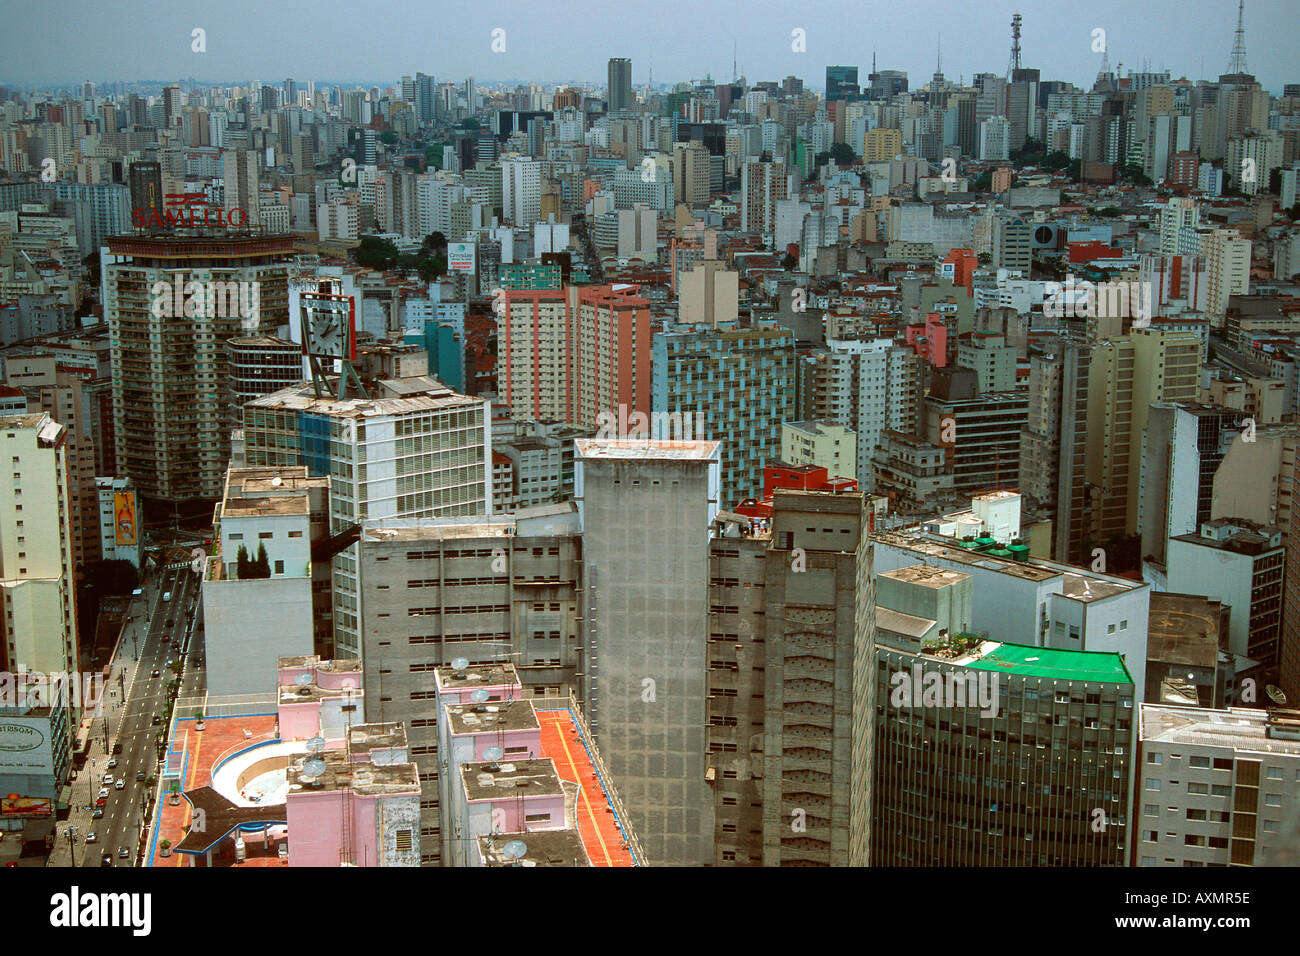 Aerial view of buildings in downtown São Paulo Brazil - Stock Image